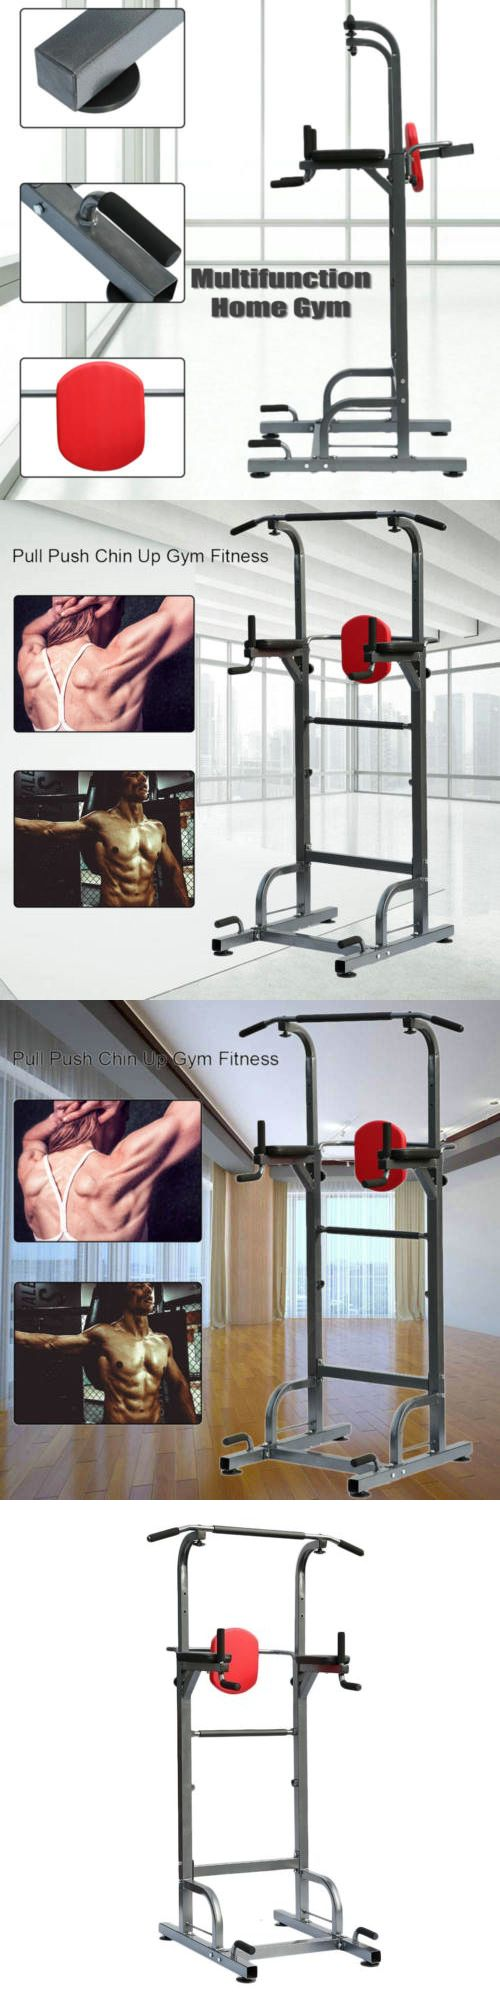 Push Up Stands 158925: Heavy Duty Dip Station Power Tower Pull Push Chin Up Bar Home Gym Fitness Core -> BUY IT NOW ONLY: $94.05 on eBay!